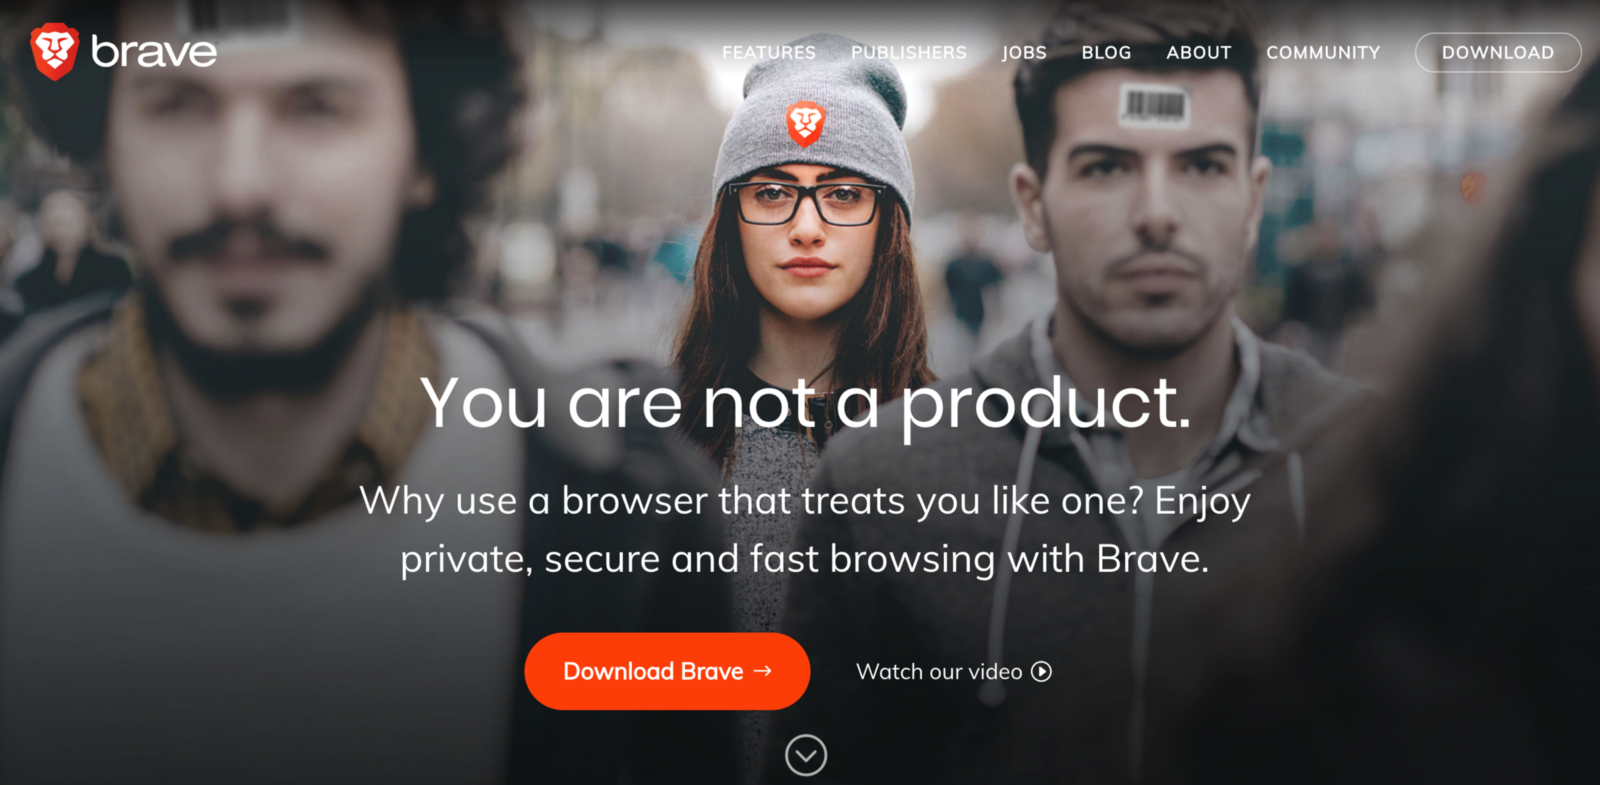 /brave-browser-is-taking-the-web-by-storm-e6fb6dcadf92 feature image